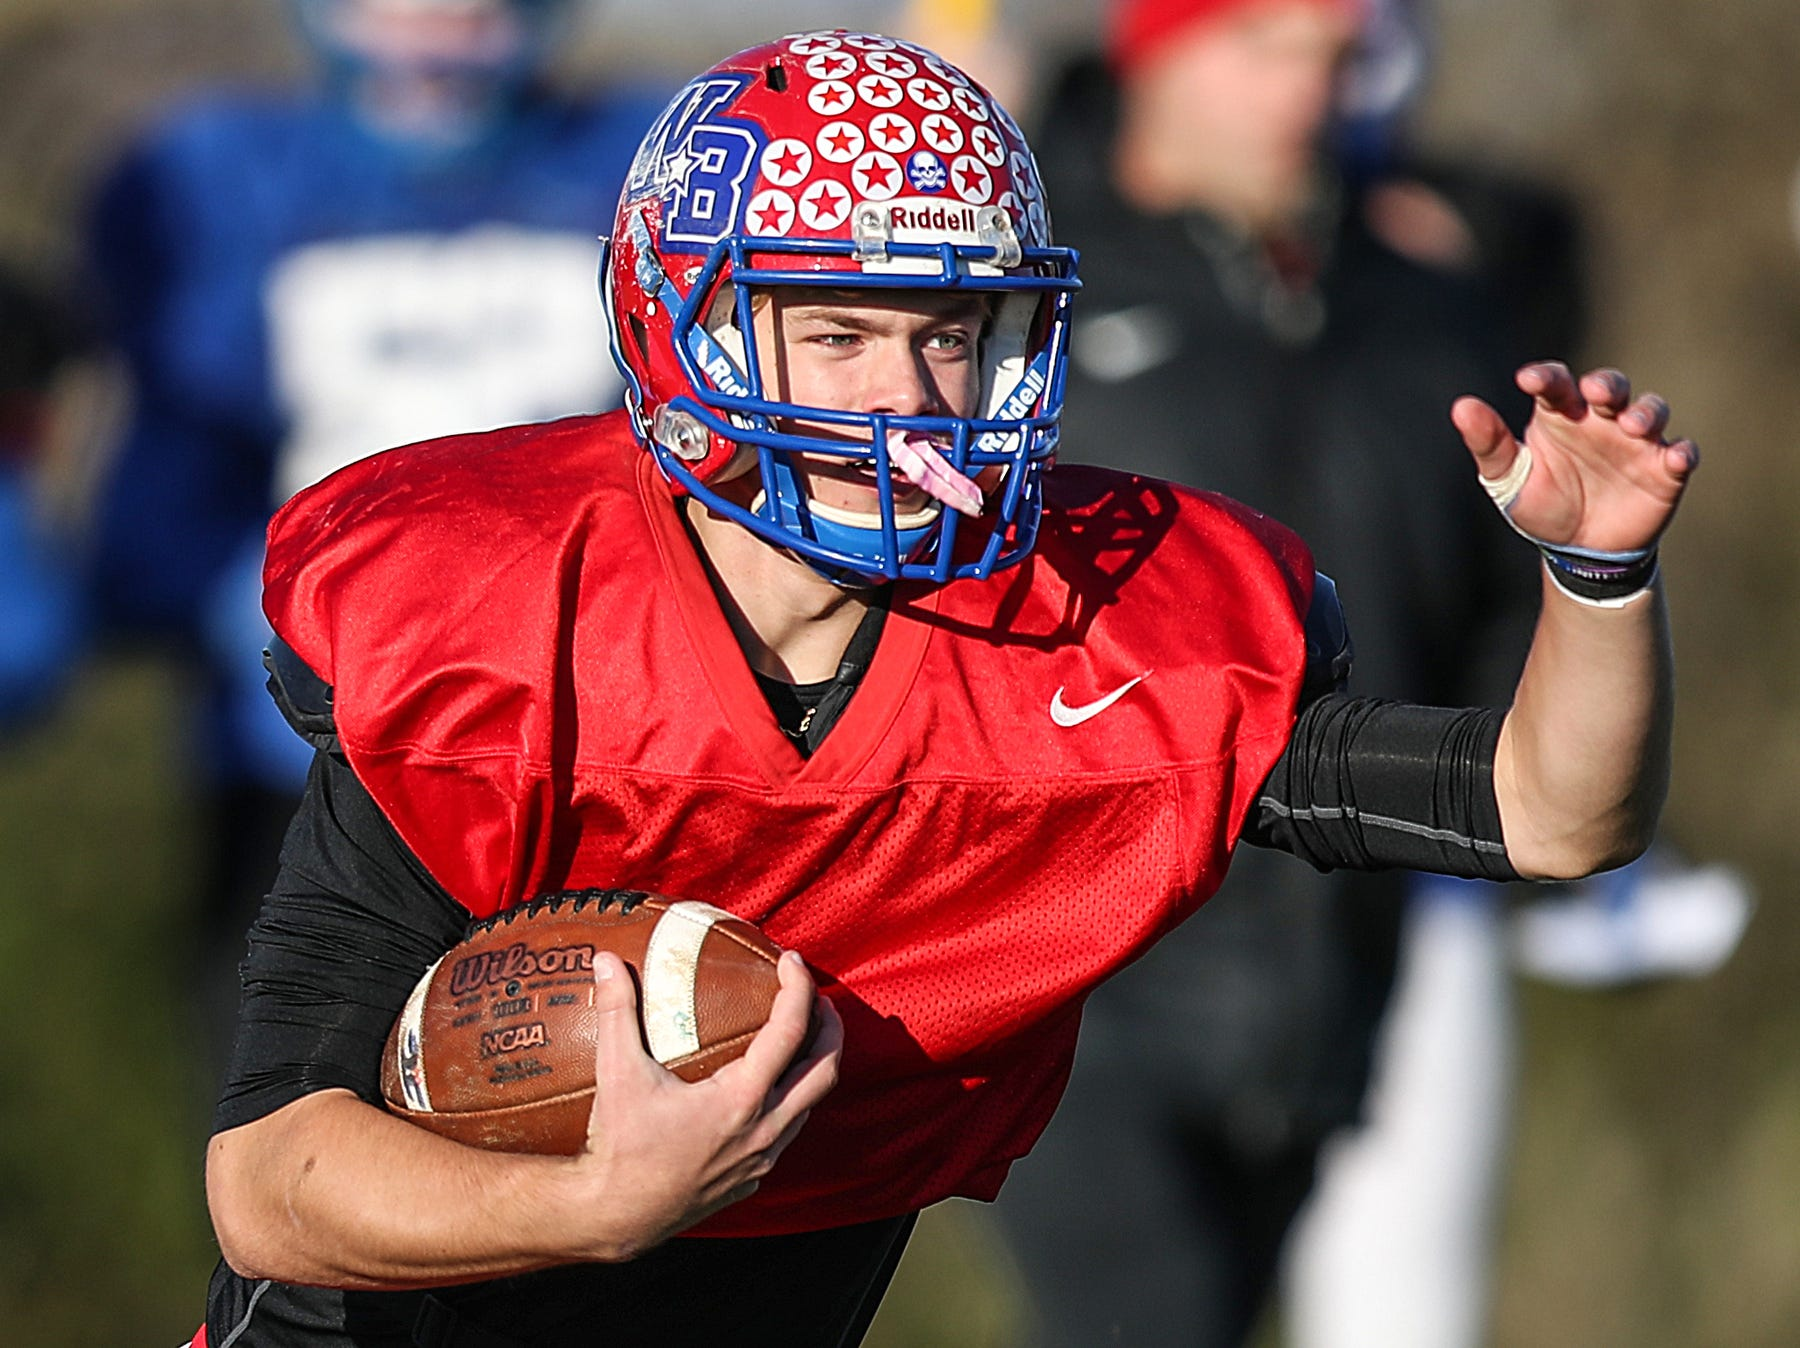 Stars quarterback Spencer Wright (7) keeps the ball while running a play during practice at Western Boone Junior-Senior High School in Thornton, Ind., Wednesday, Nov. 7, 2018. Western Boone faces Scecina on Friday, Nov. 9, in the regional championship.